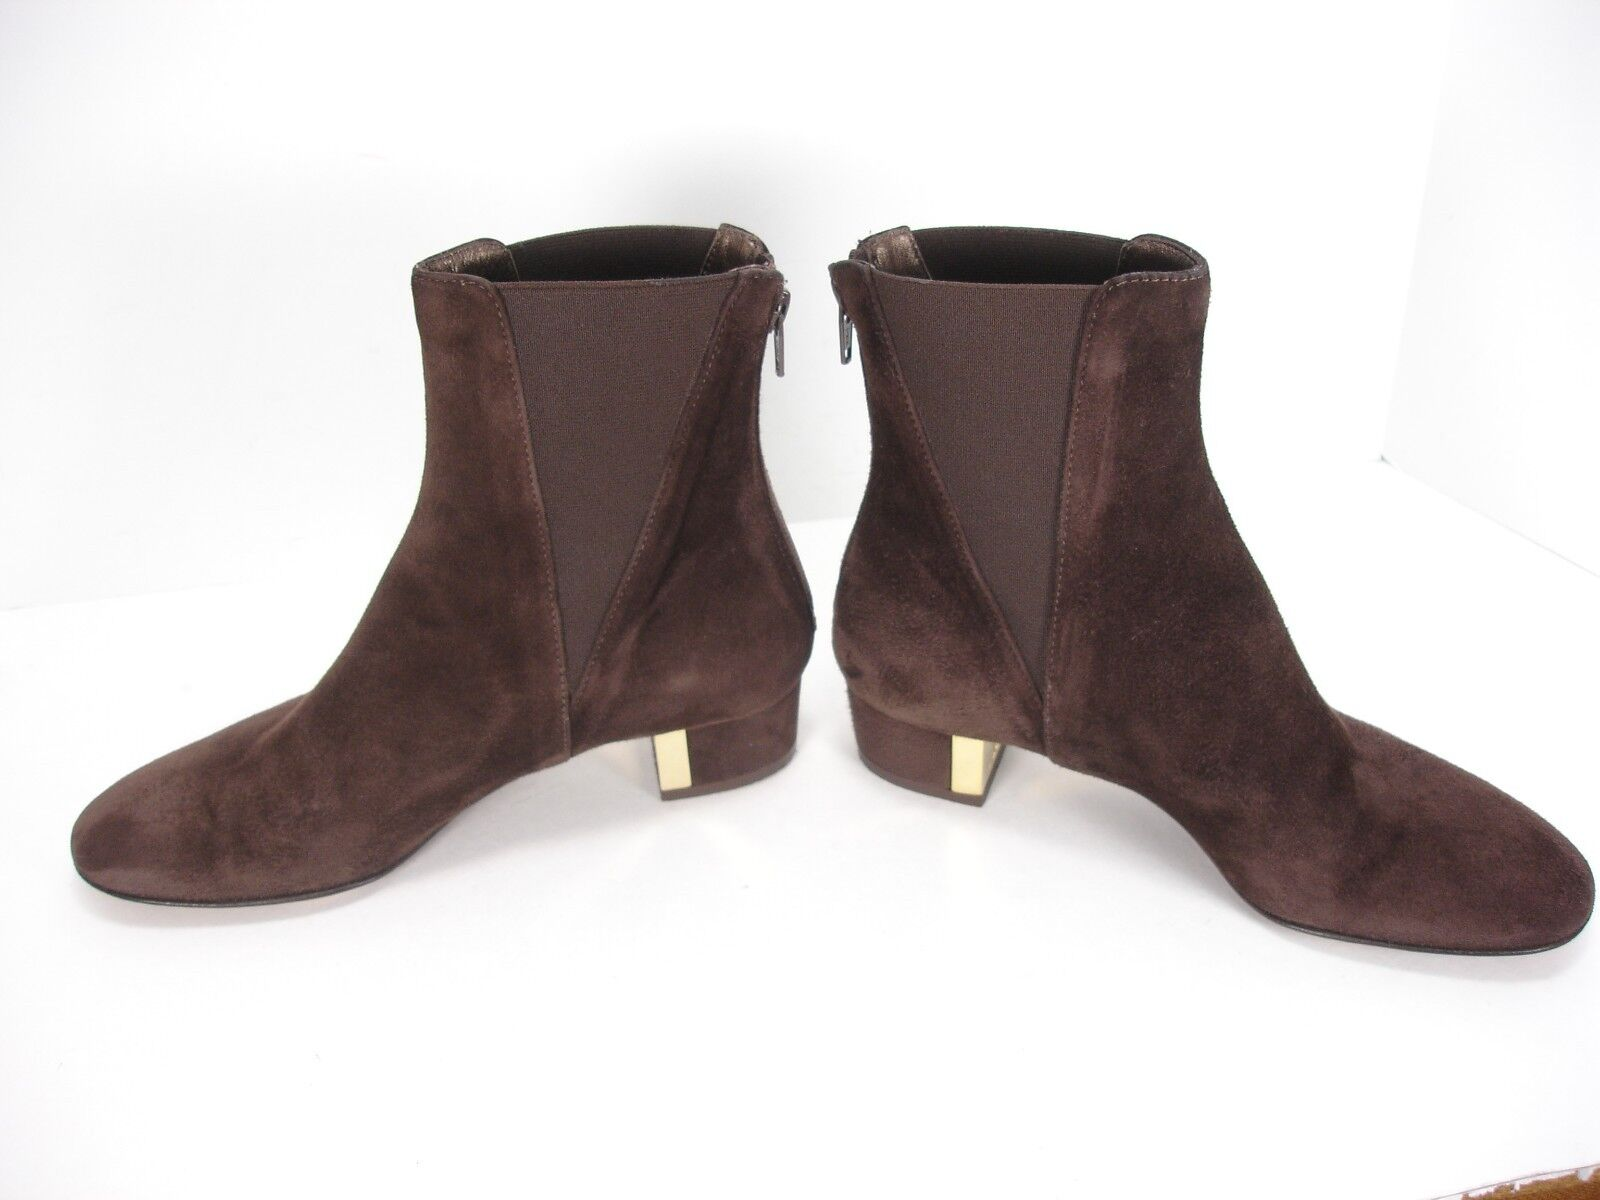 AGL ATTILIO GIUSTI LEOMBRUNI BROWN SUEDE SIDE ZIP ANKLE BOOTS BOOTIES WOMEN'S 36